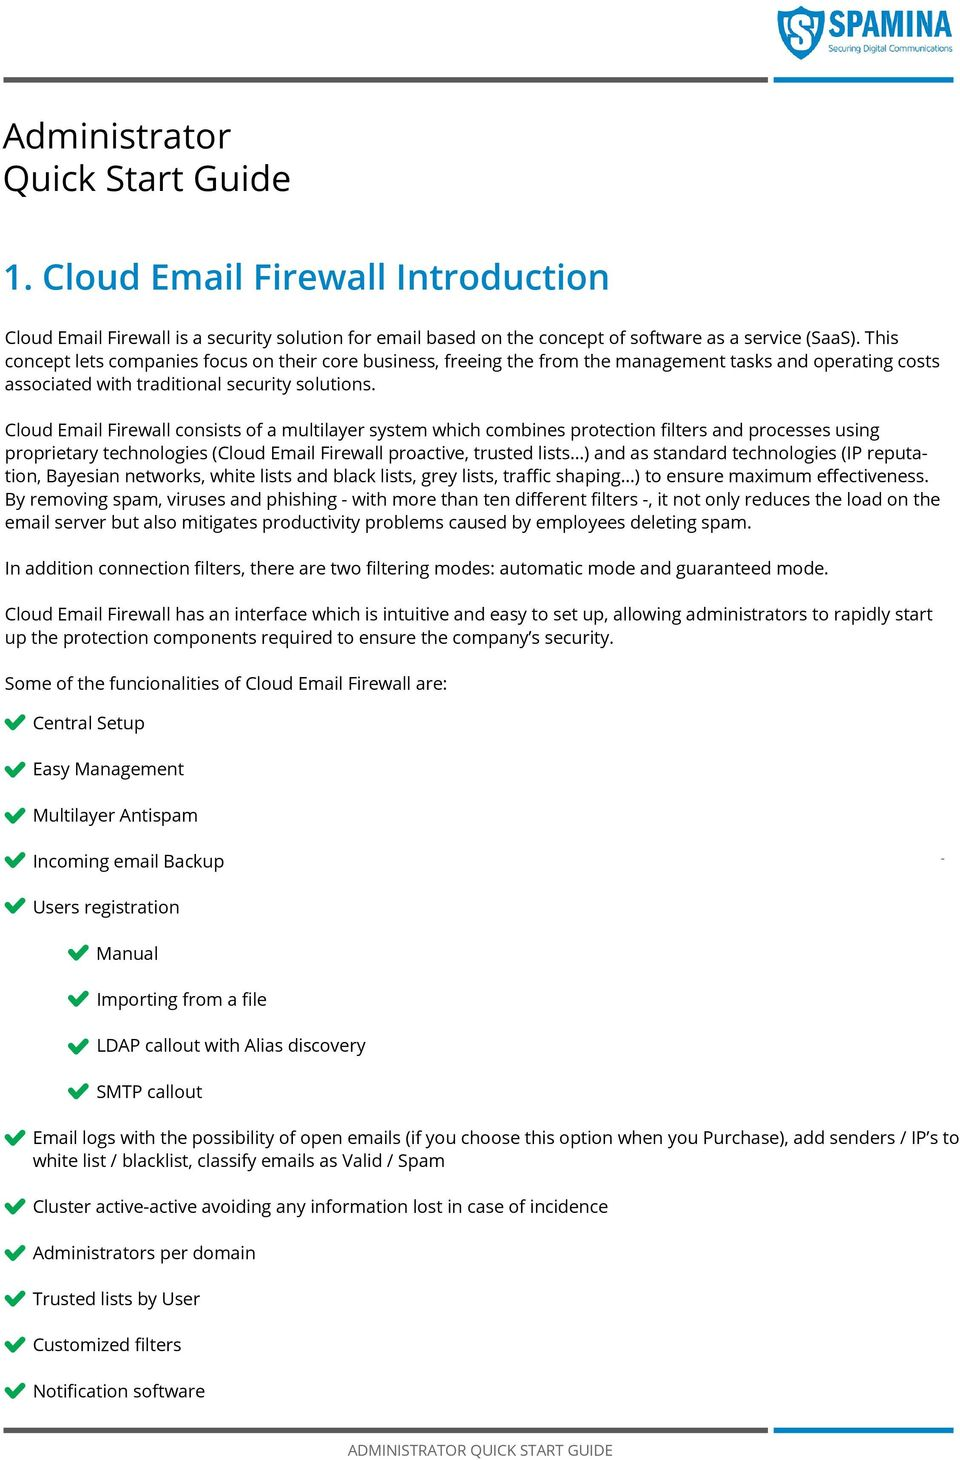 Cloud Email Firewall consists of a multilayer system which combines protection filters and processes using proprietary technologies (Cloud Email Firewall proactive, trusted lists.